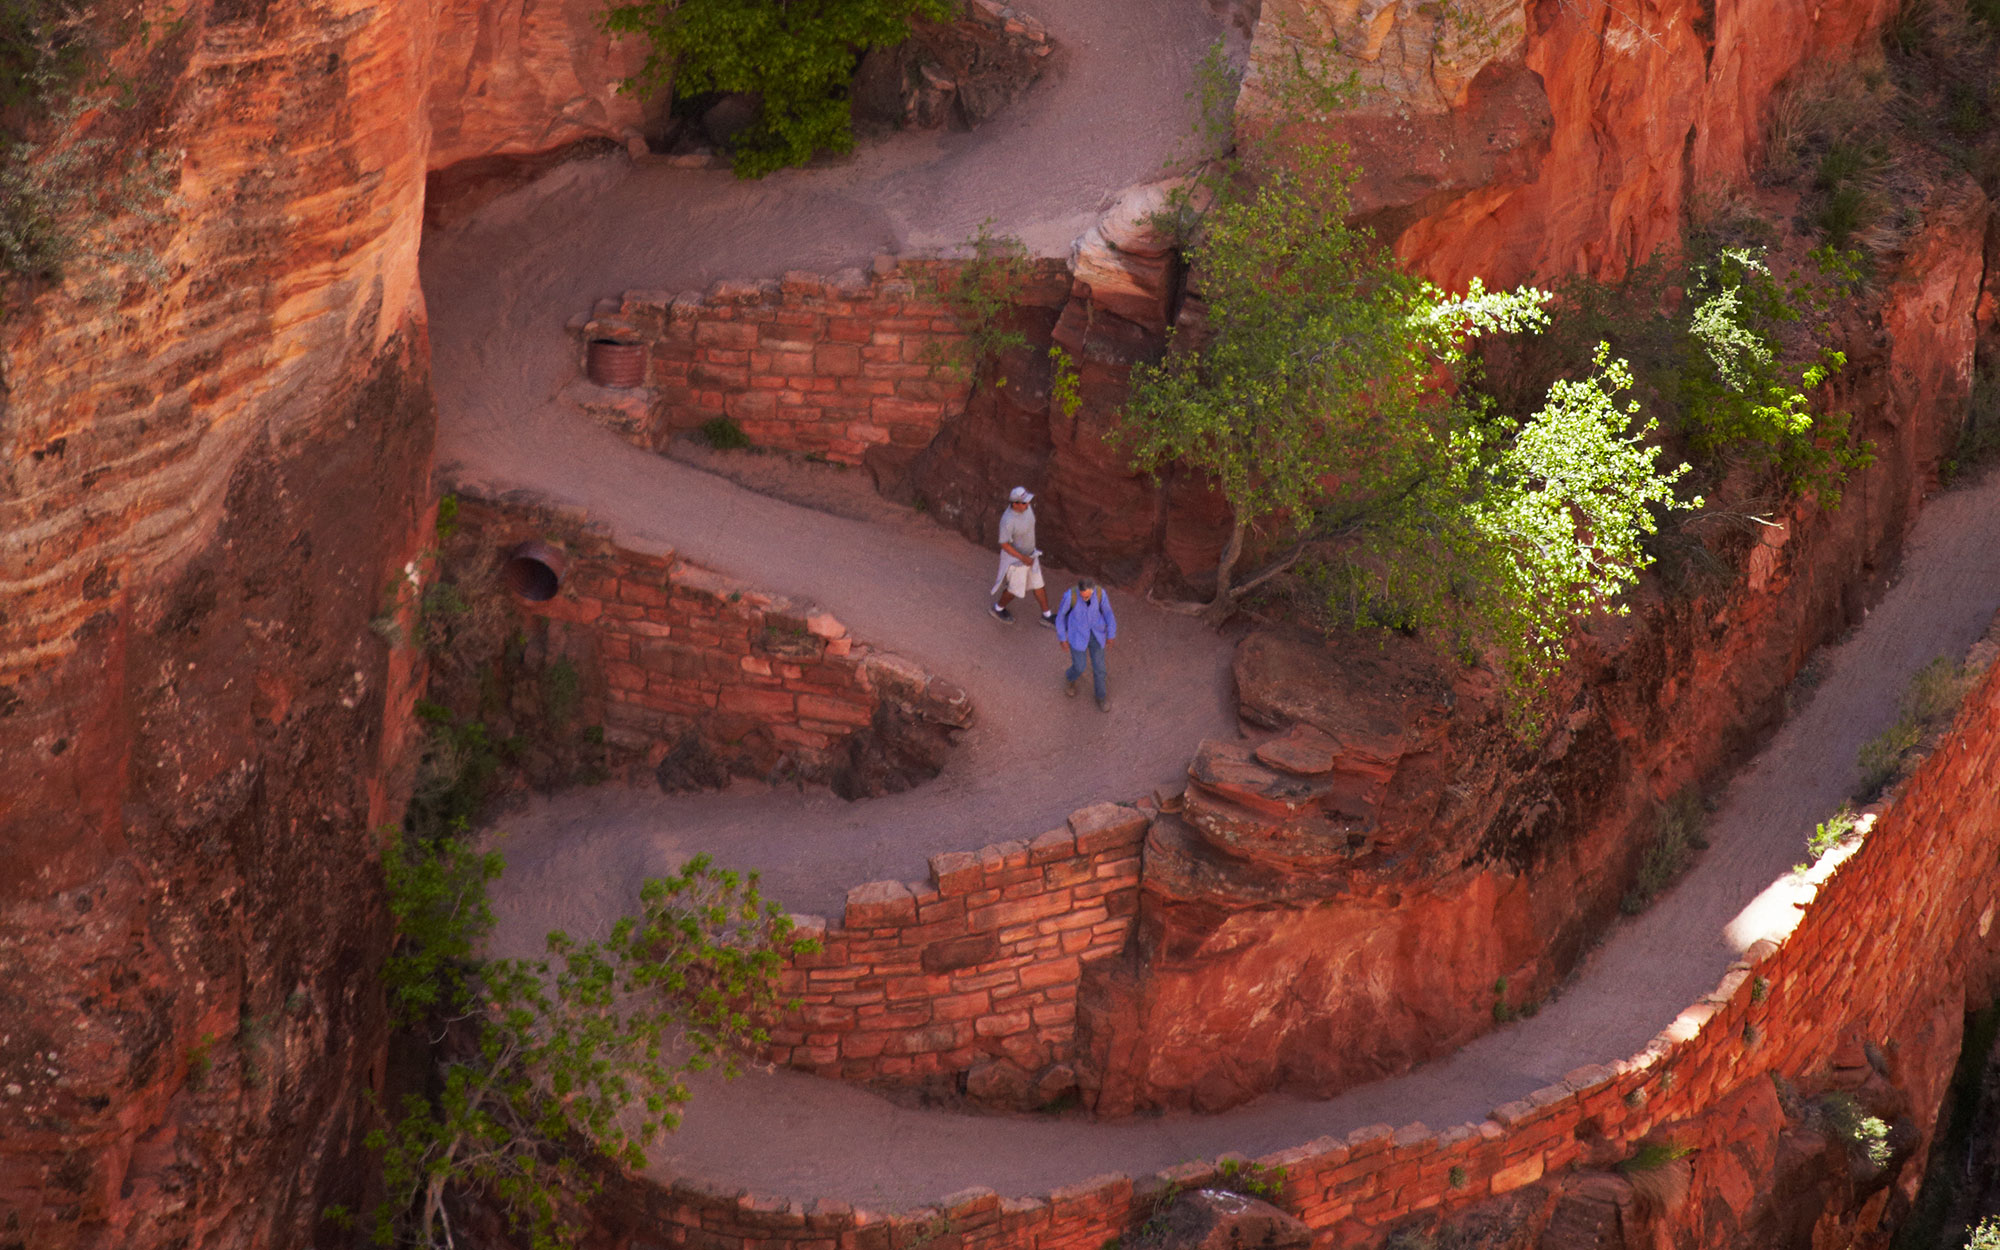 Hikers on Walters Wiggles zigzag, on West Rim Trail and Angels Landing track Zion National Park, Utah, USA